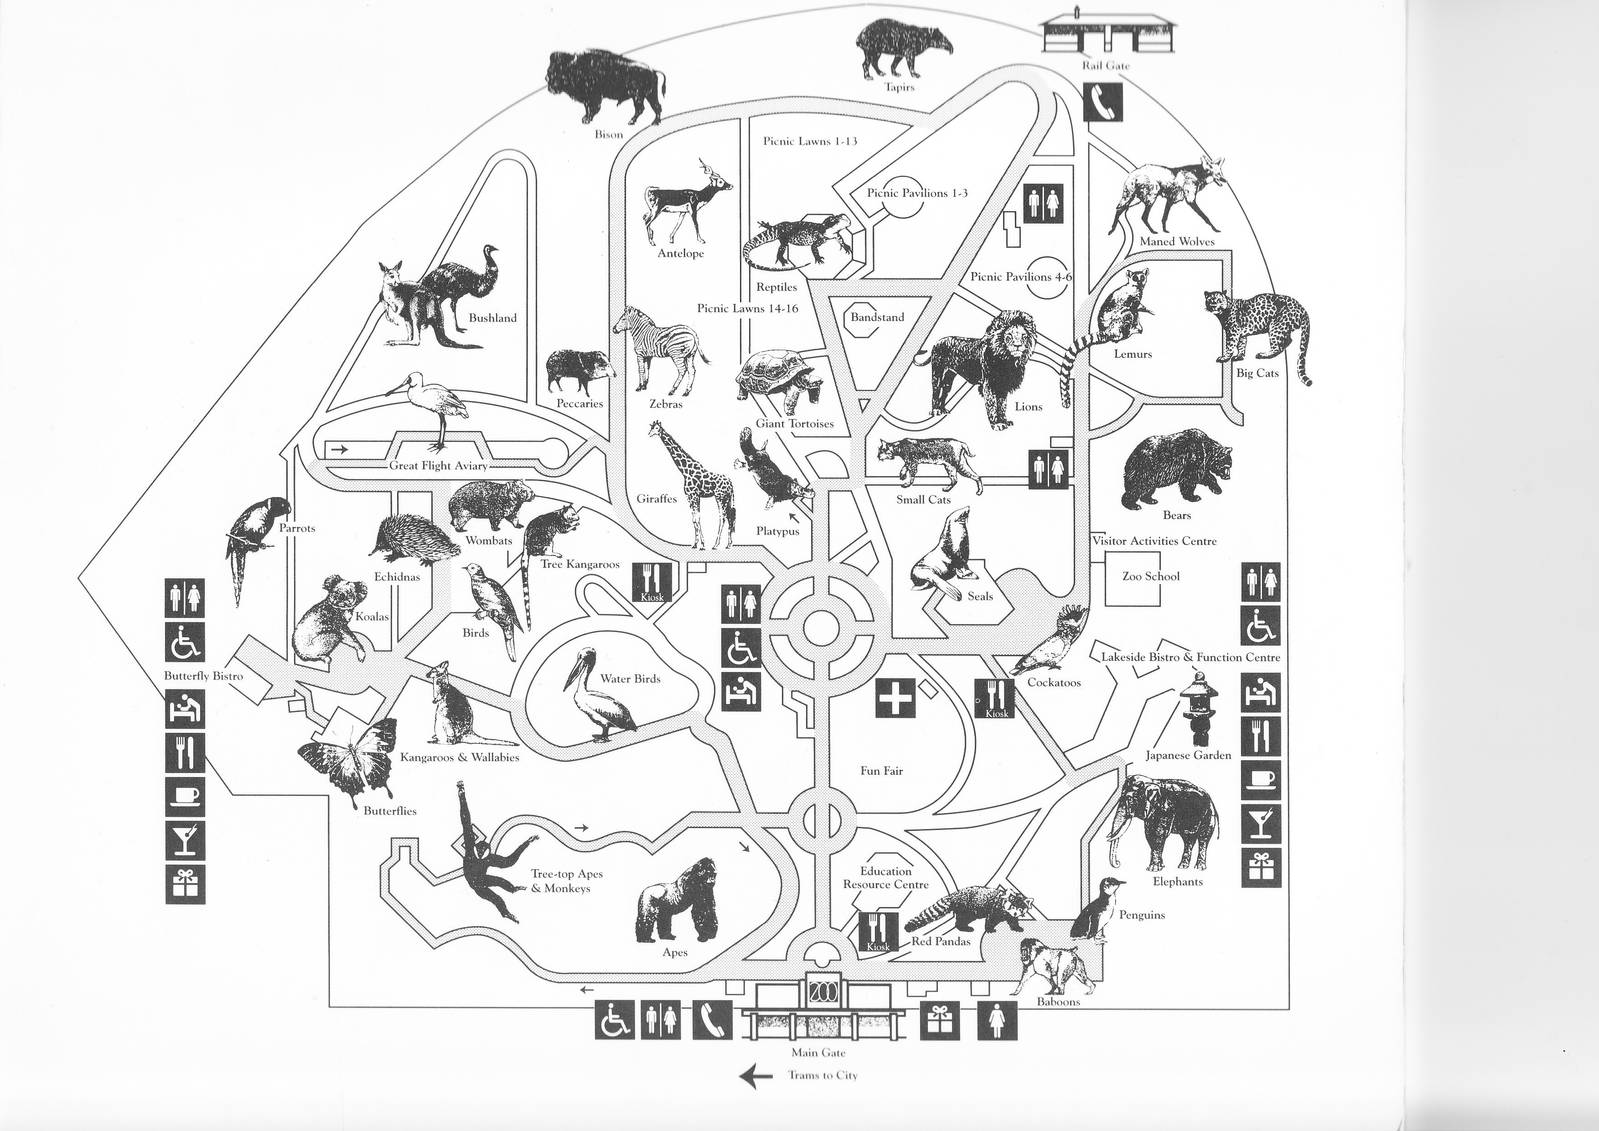 Melbourne Zoo Map Melbourne Zoo map 1992   ZooChat Melbourne Zoo Map